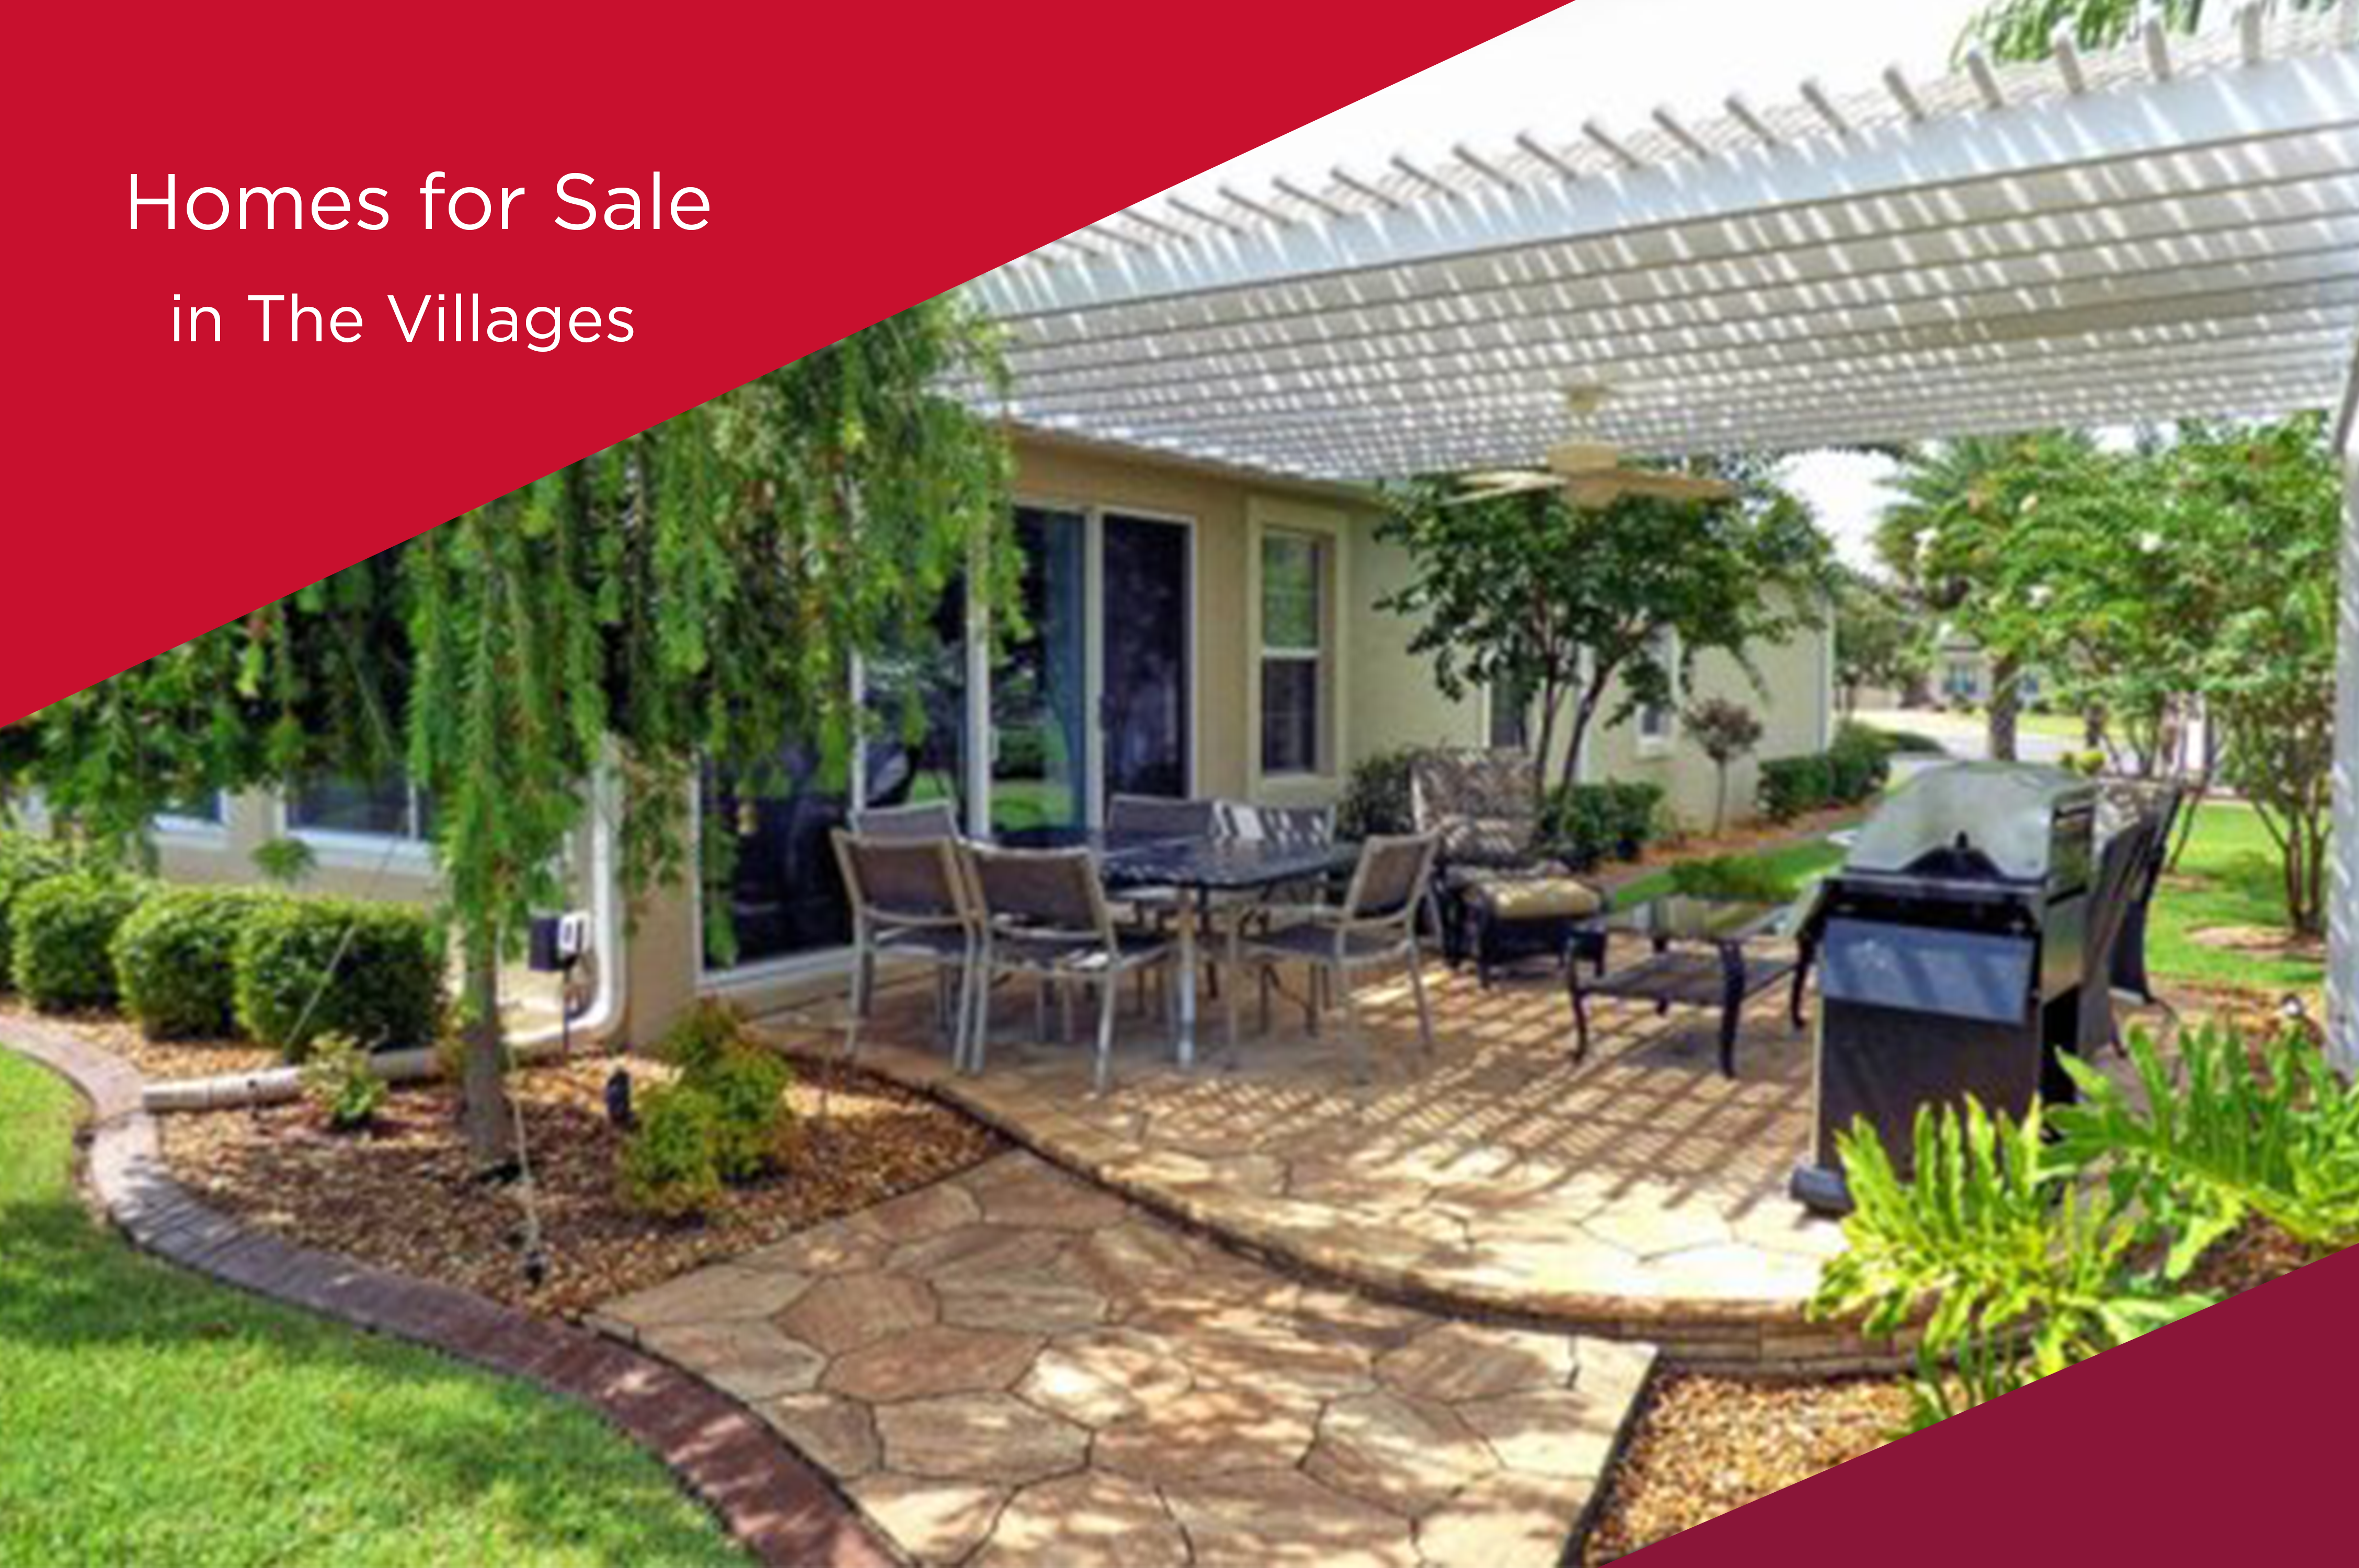 3 fetching homes for sale in The Villages FL. Choices! Choices!